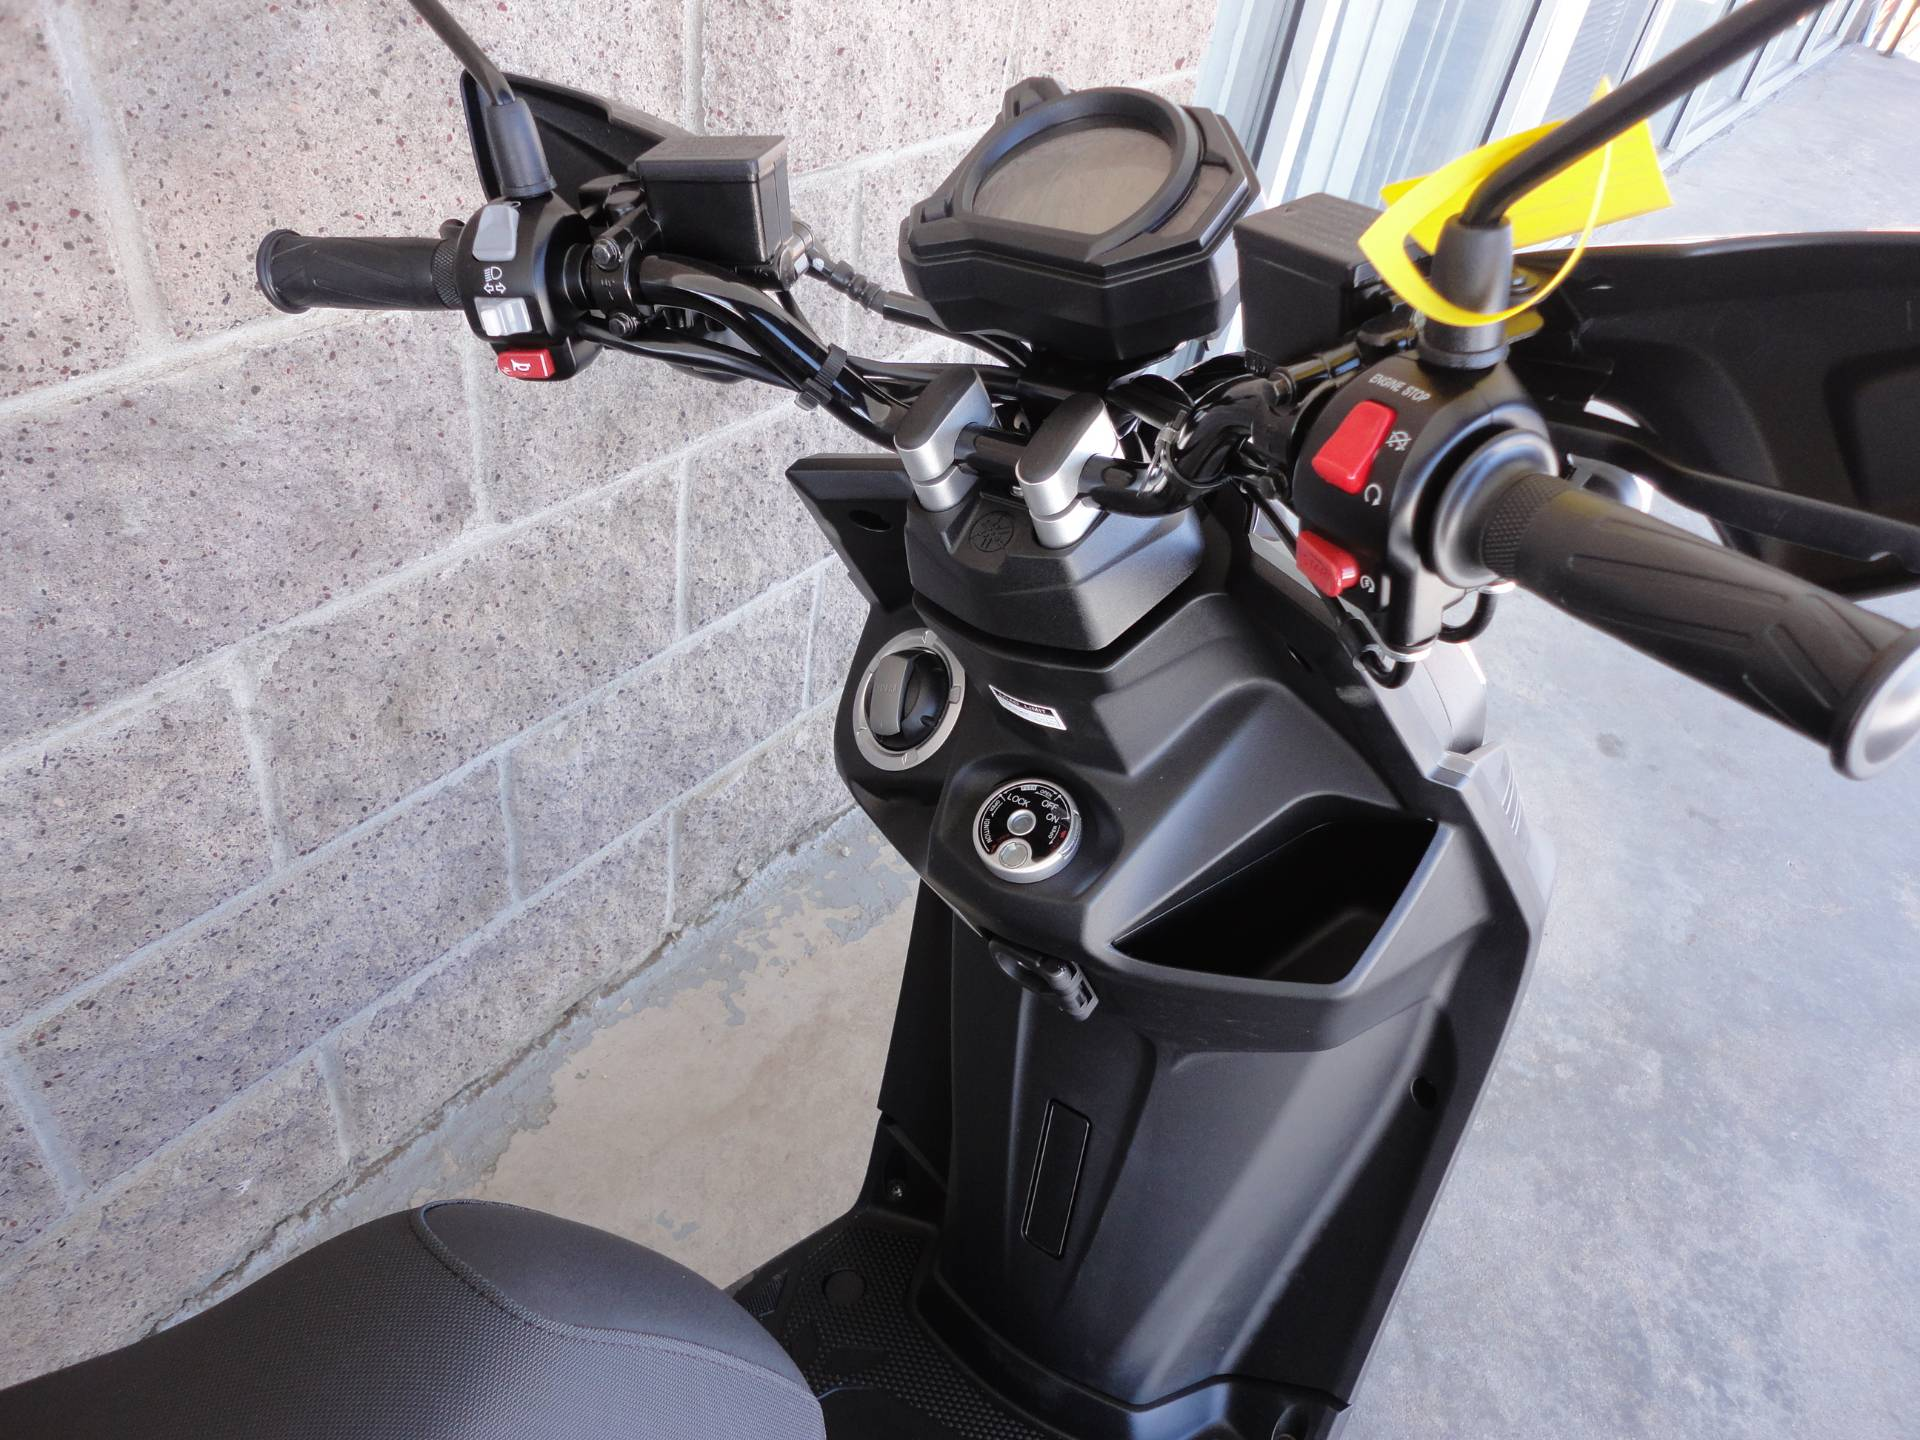 2020 Yamaha Zuma 125 in Denver, Colorado - Photo 18